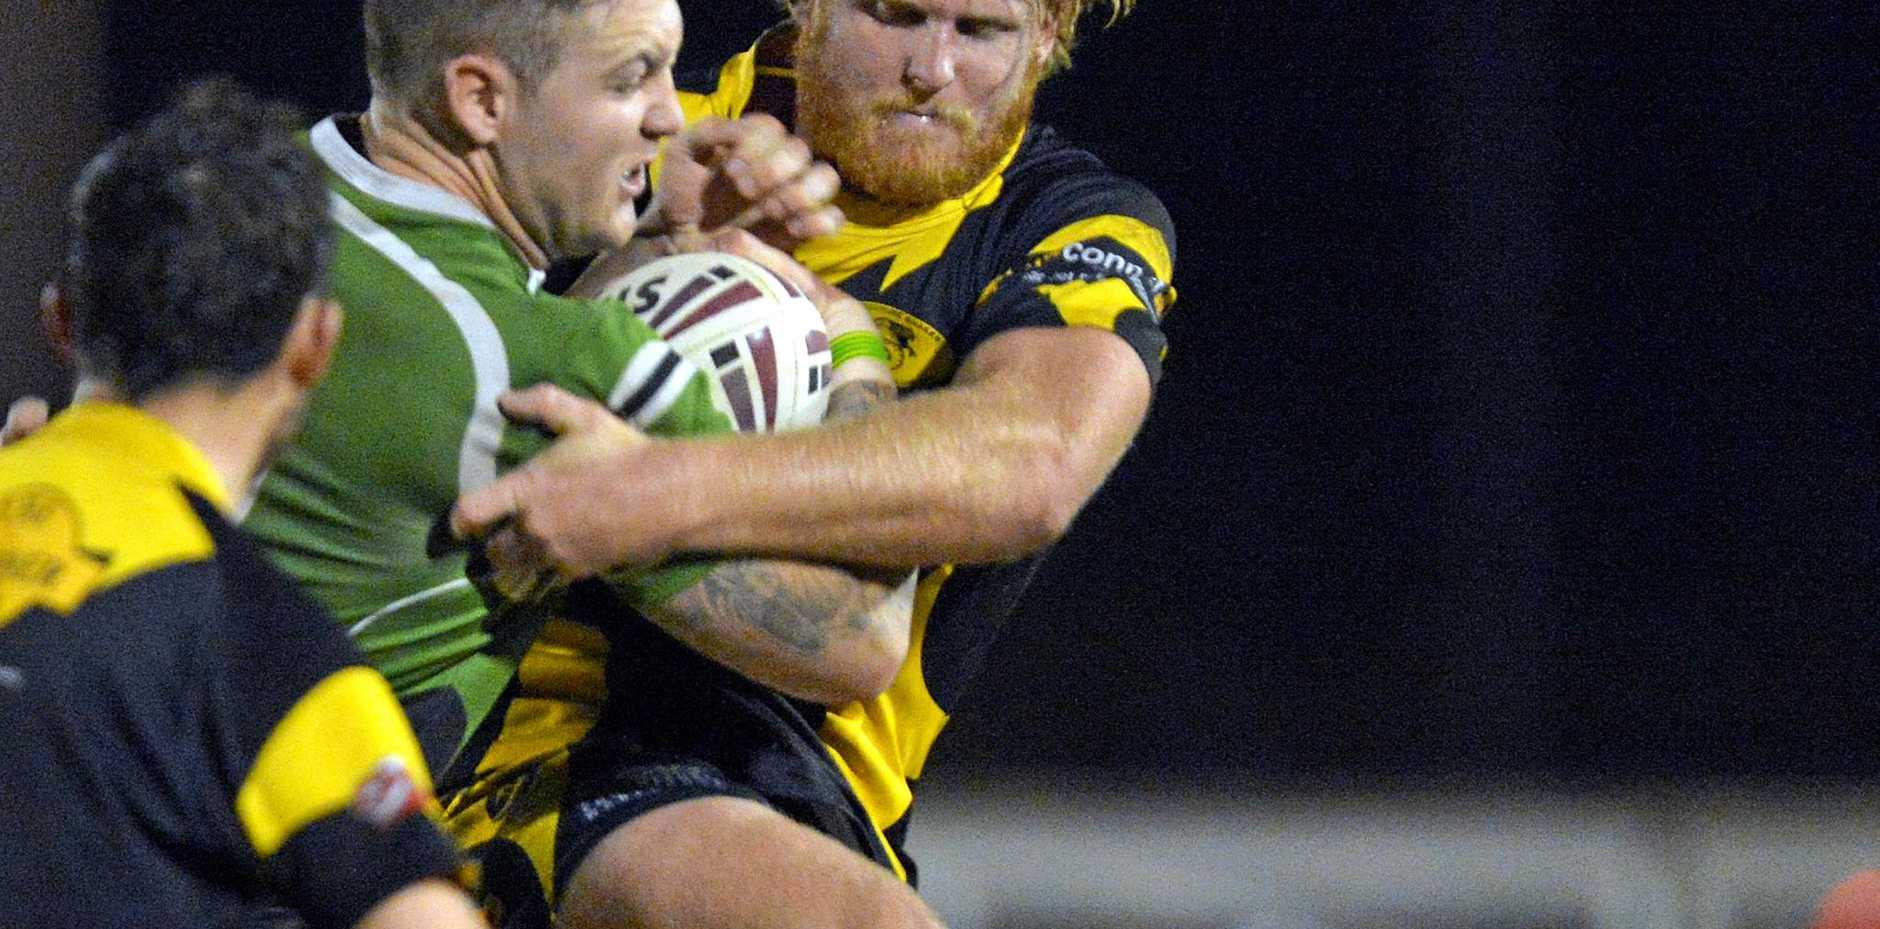 KEY MAN: Matt Cornish in action a couple of years ago. He's returned to the Snakes for 2017.